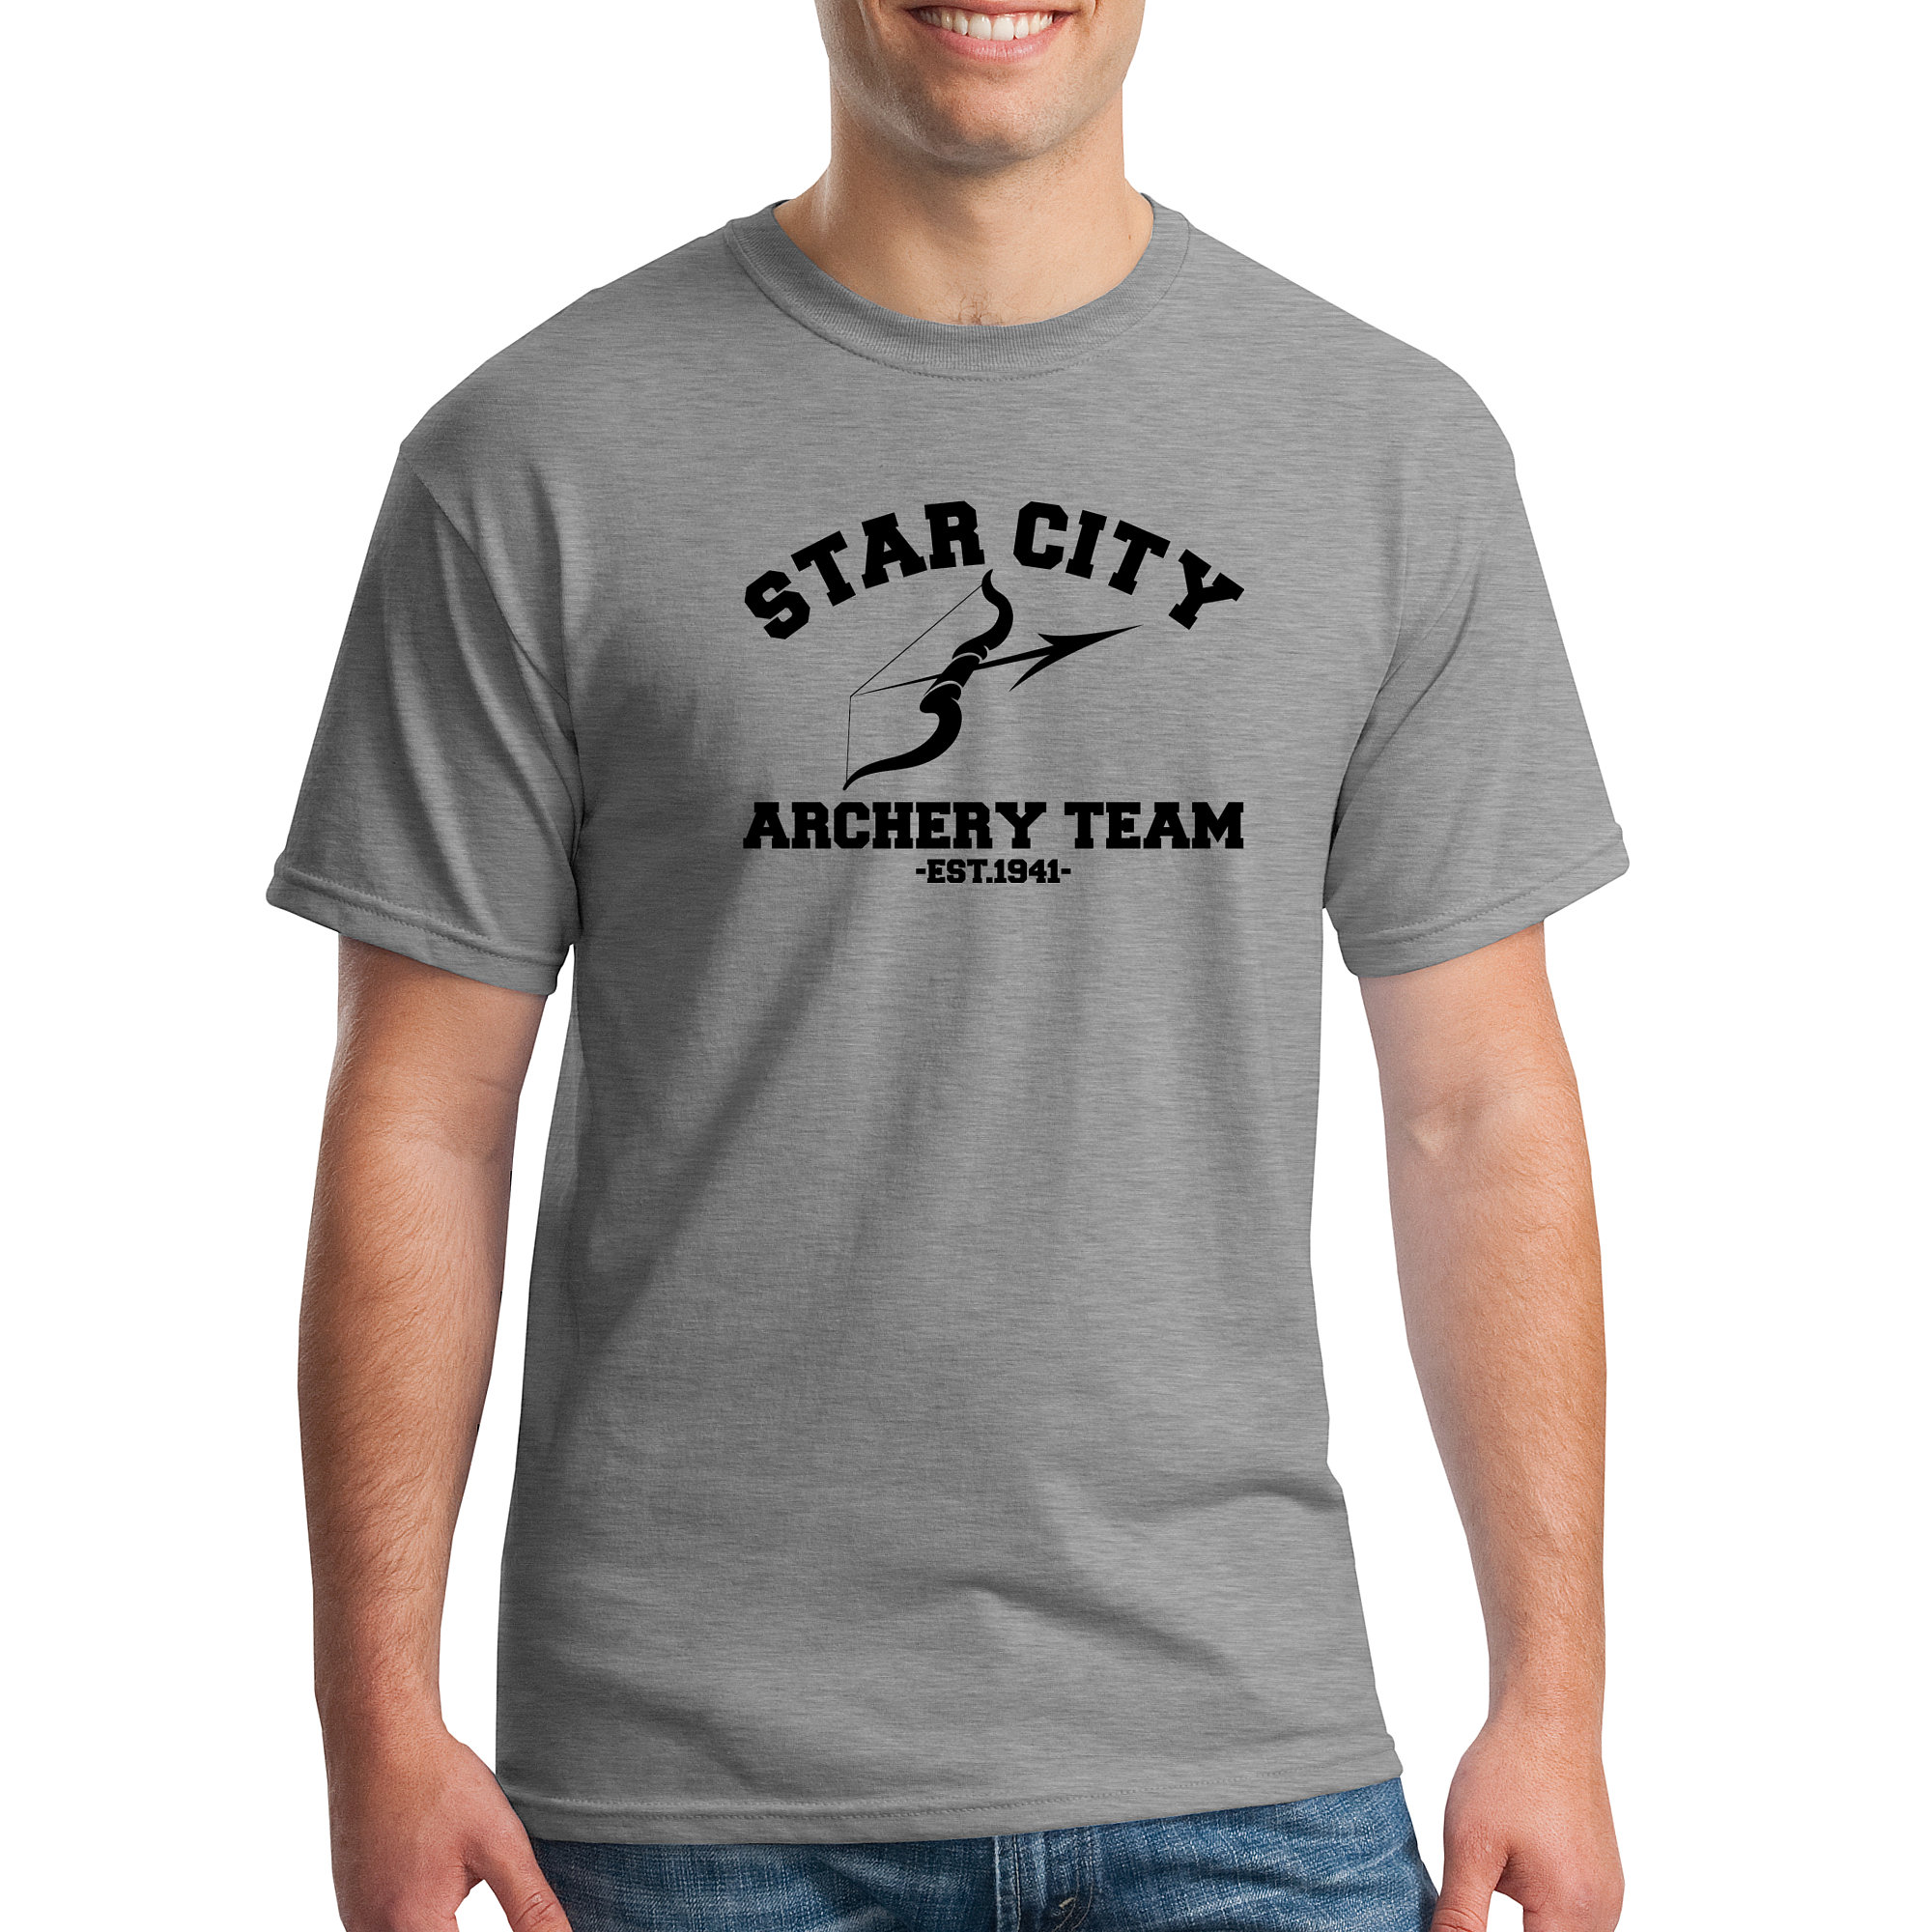 Design t shirt unique - This Green Arrow Themed Scholars Collection T Shirt Features The Star City Archery Team Slogan And Is Designed By And Unique To Abrupt Design